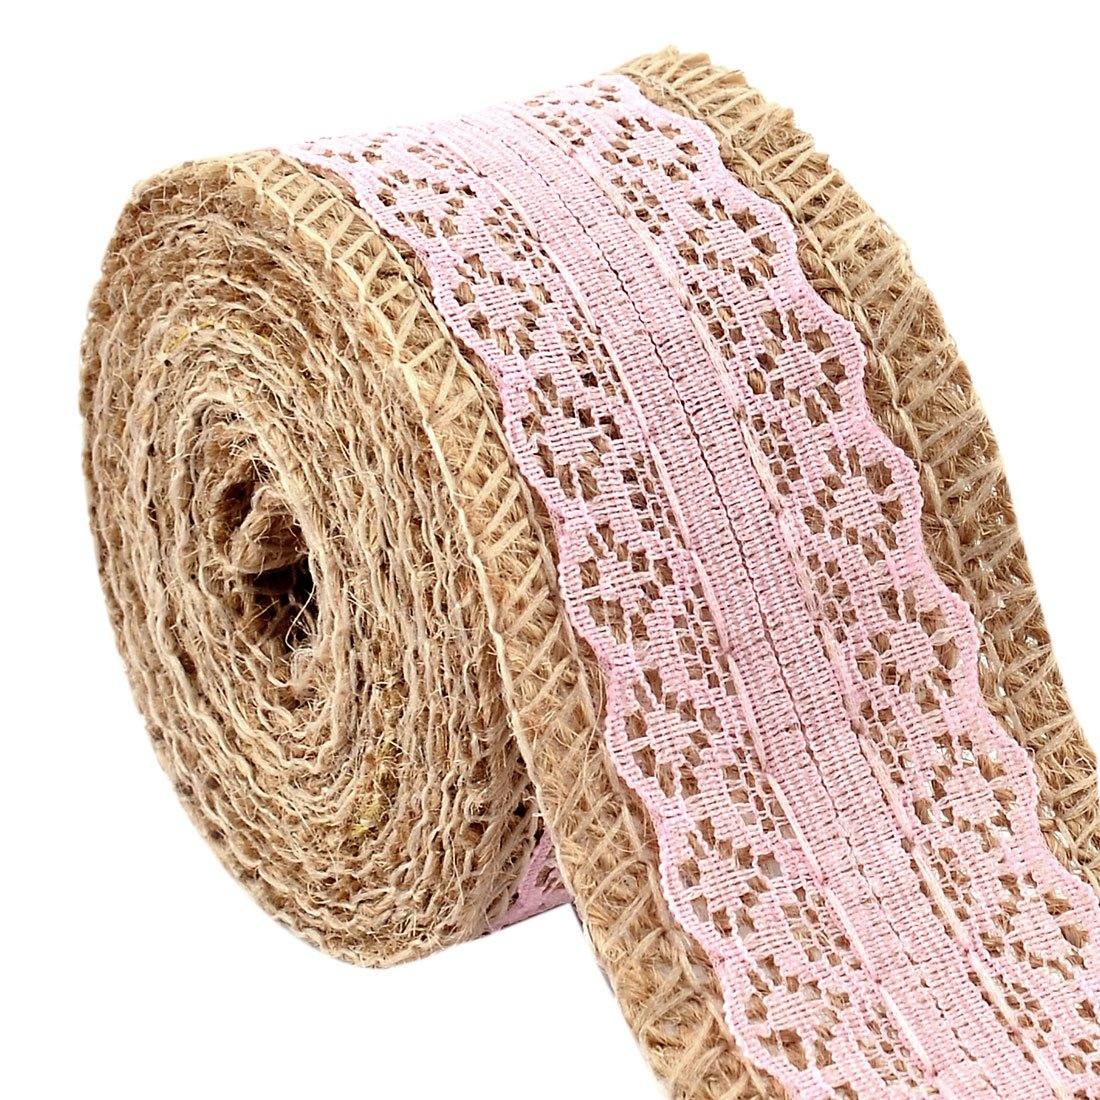 Amazon.com: uxcell Burlap Belt Strap String Crafting Lace Ribbon ...